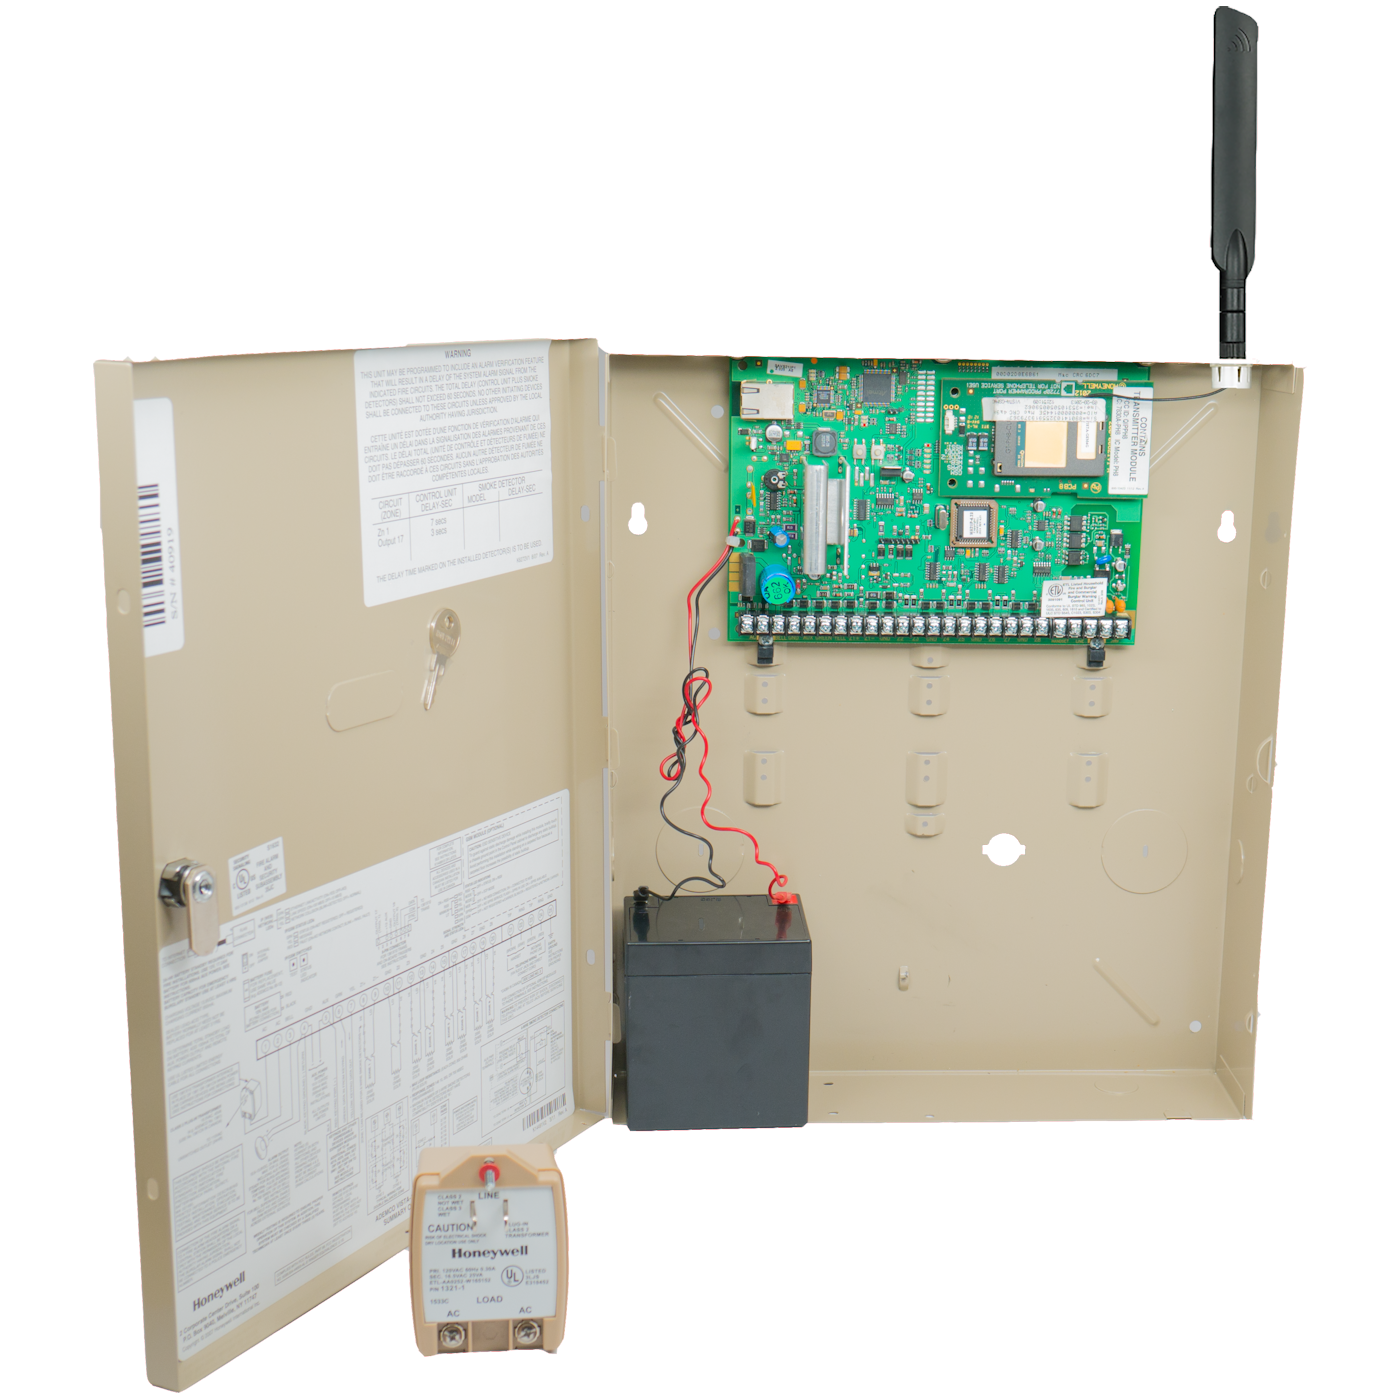 Honeywell vista 21ip dual path security system honeywell vista 21ip dual paths ip 4g security system solutioingenieria Image collections